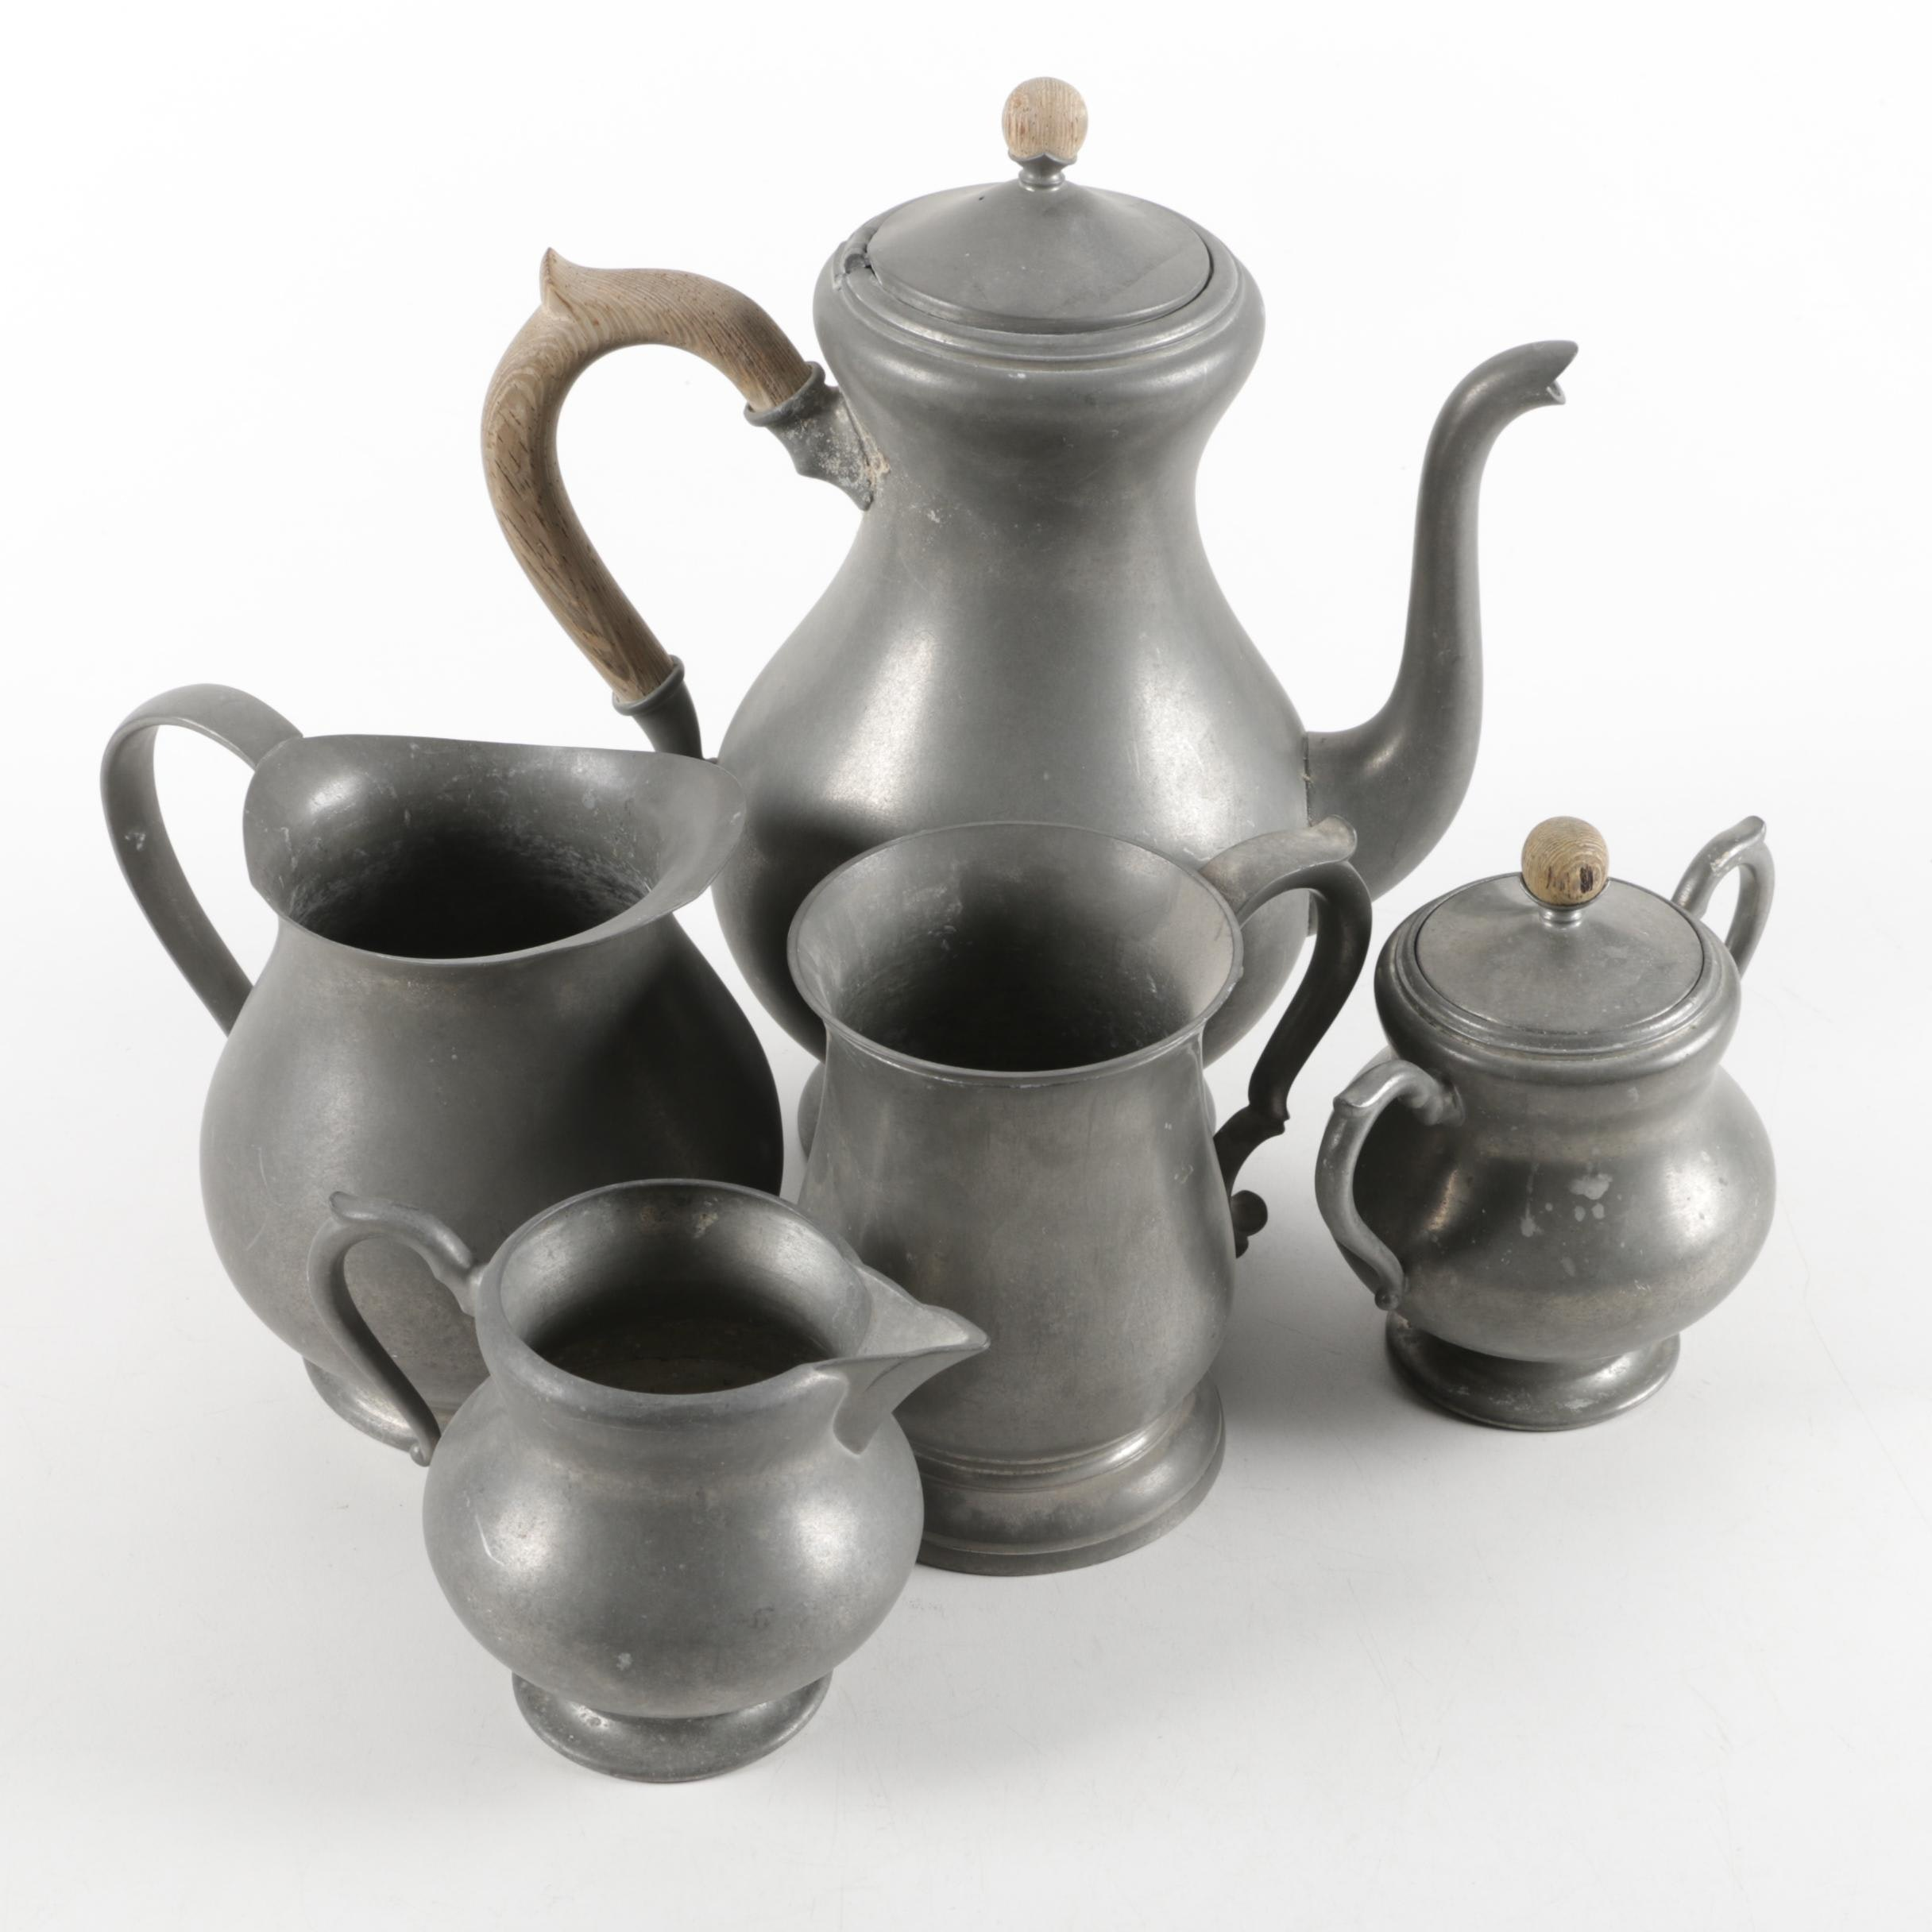 K.M.D. Tiel Royal Holland Pewter Coffee Set